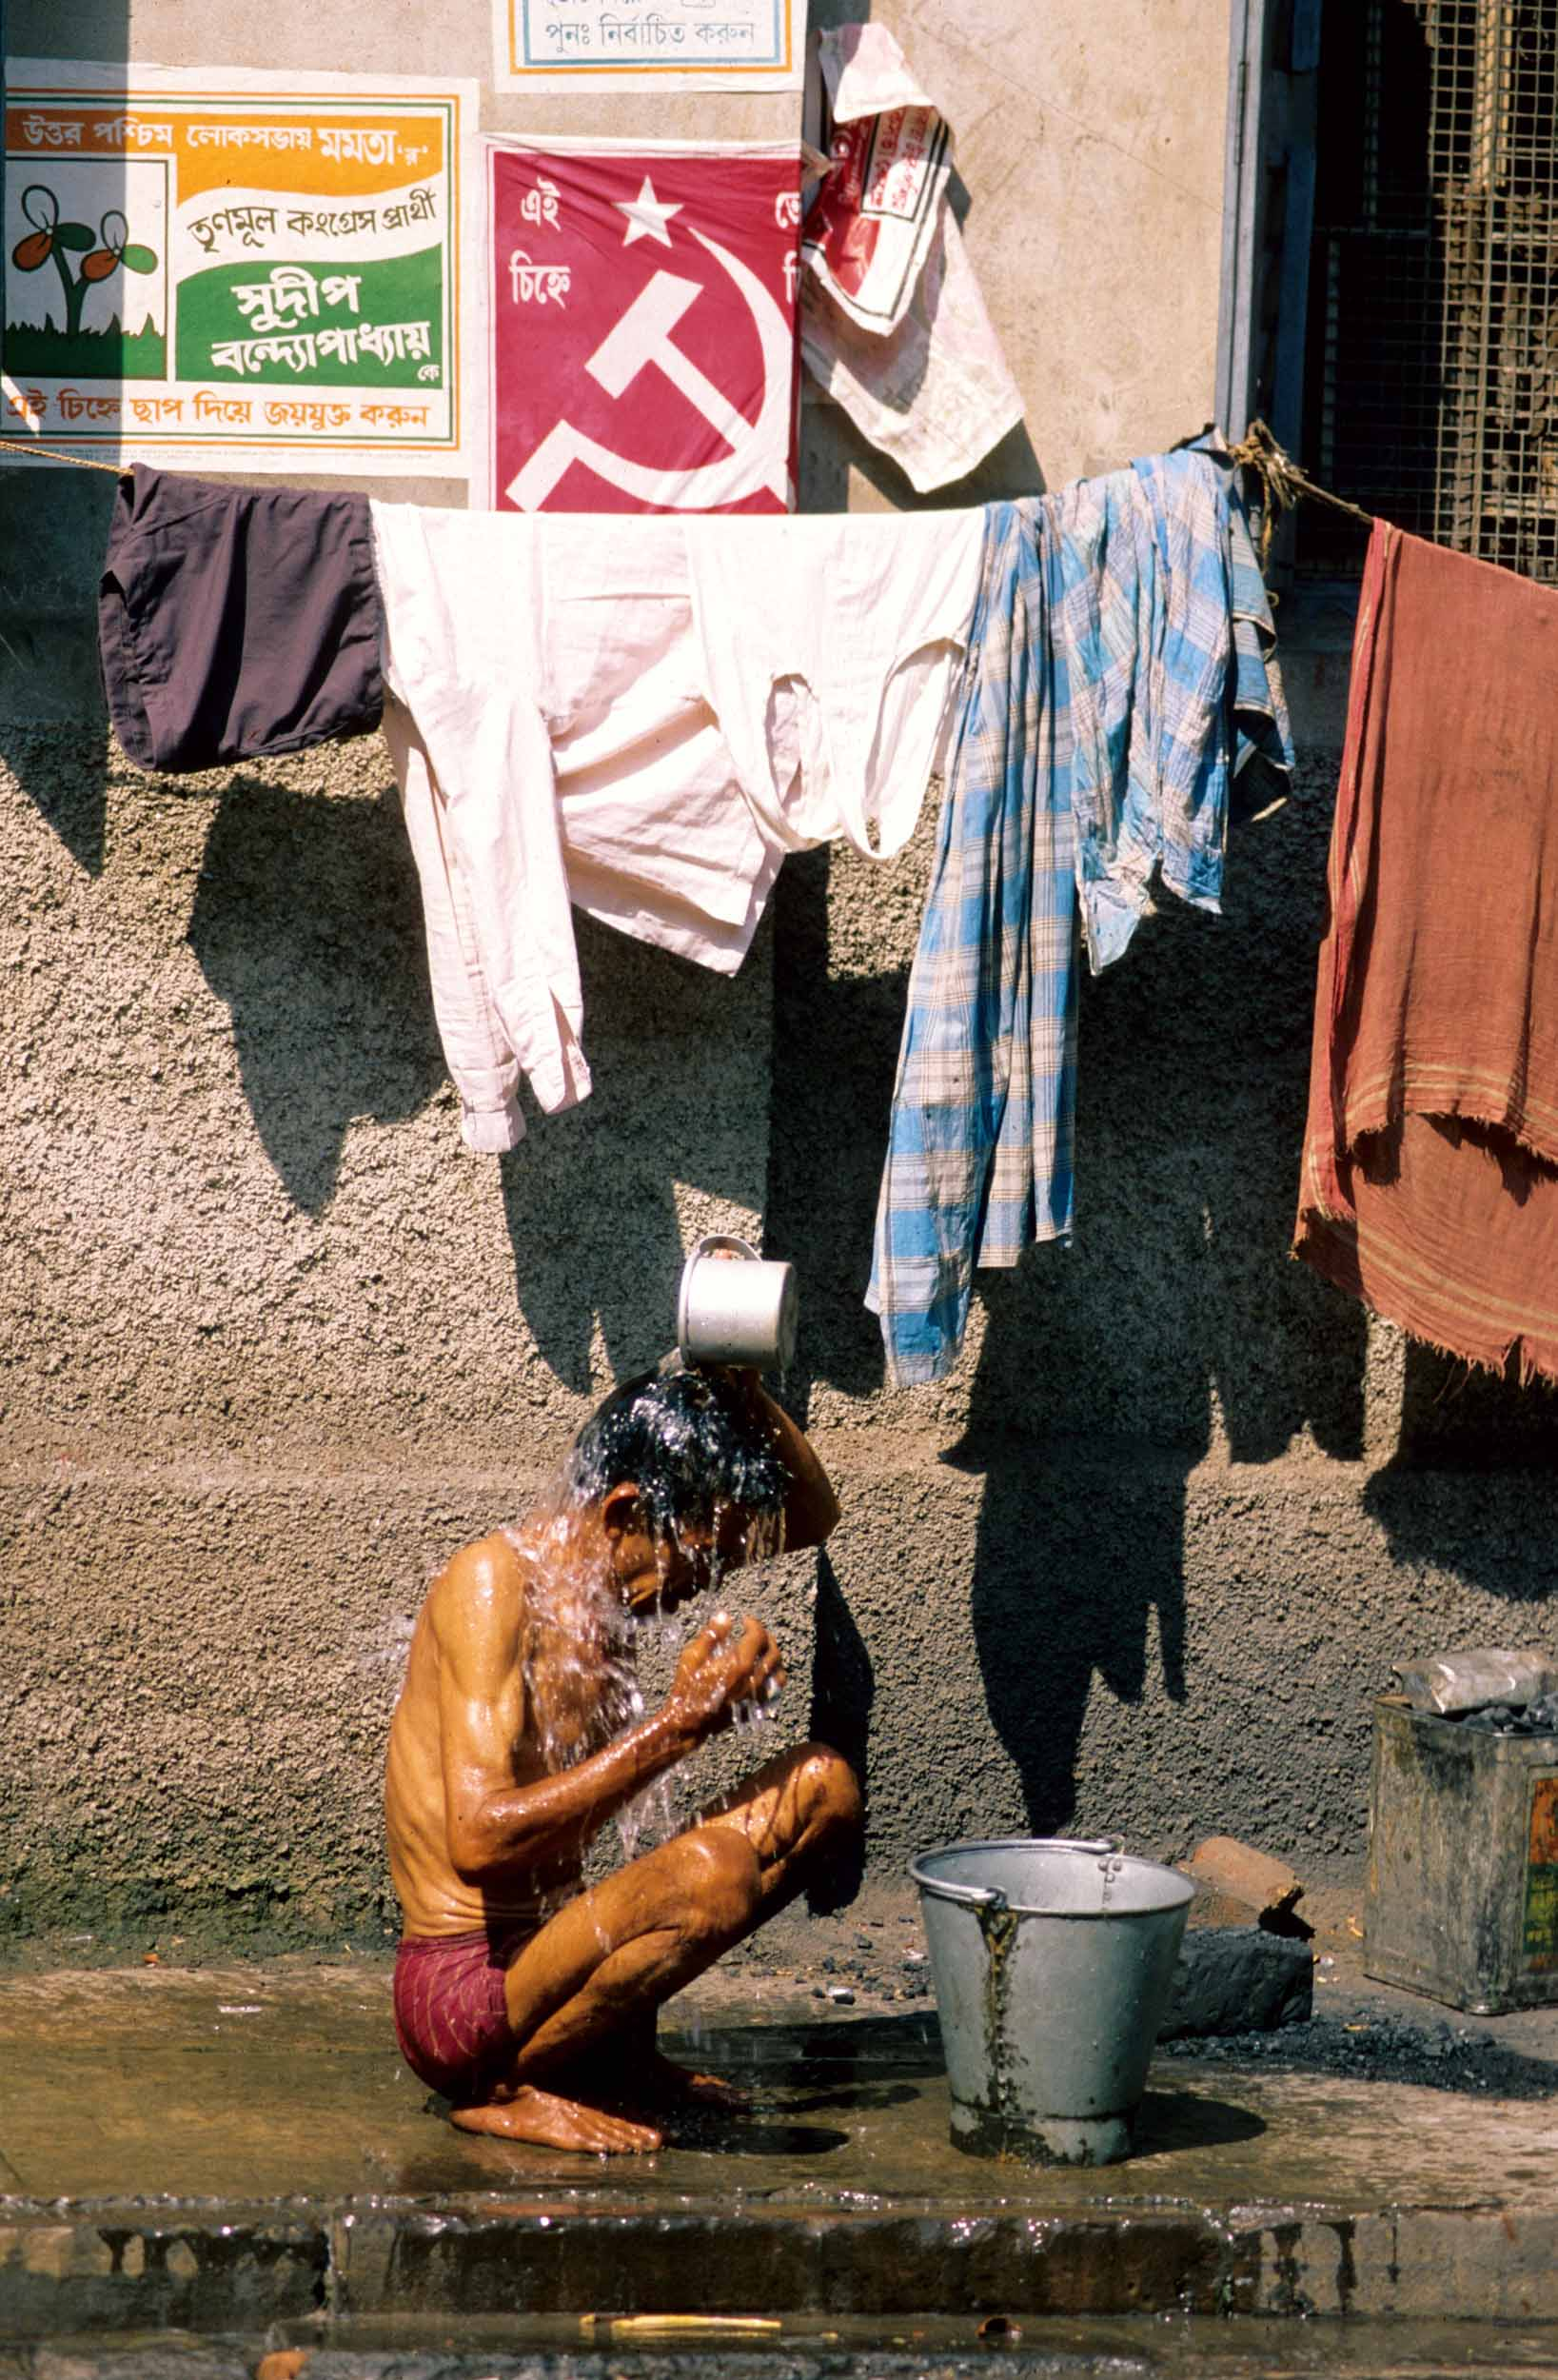 T6754. Bathing Man. Calcutta. India 1992.crop